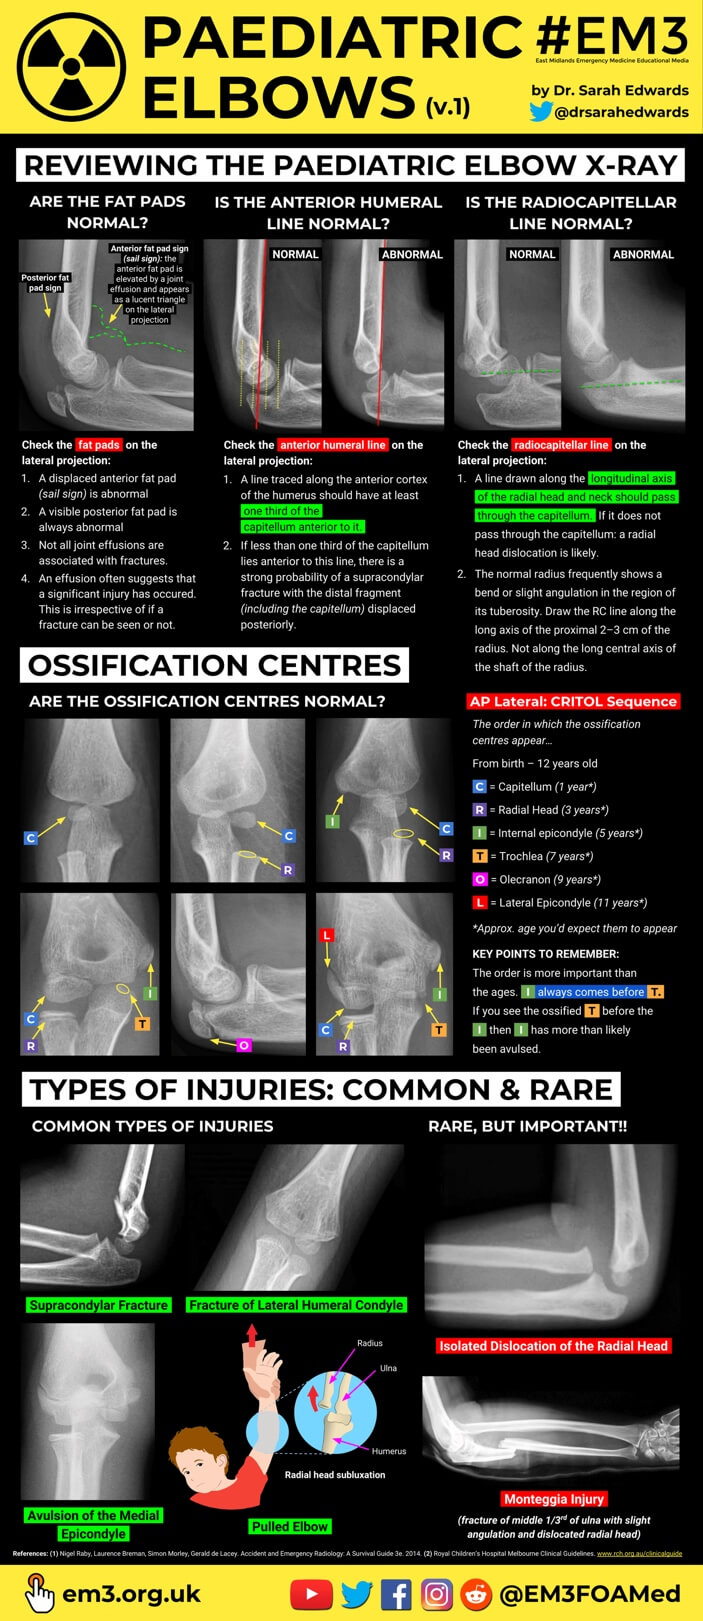 Paediatric Elbow Injuries v.1 (thumbnail).jpg